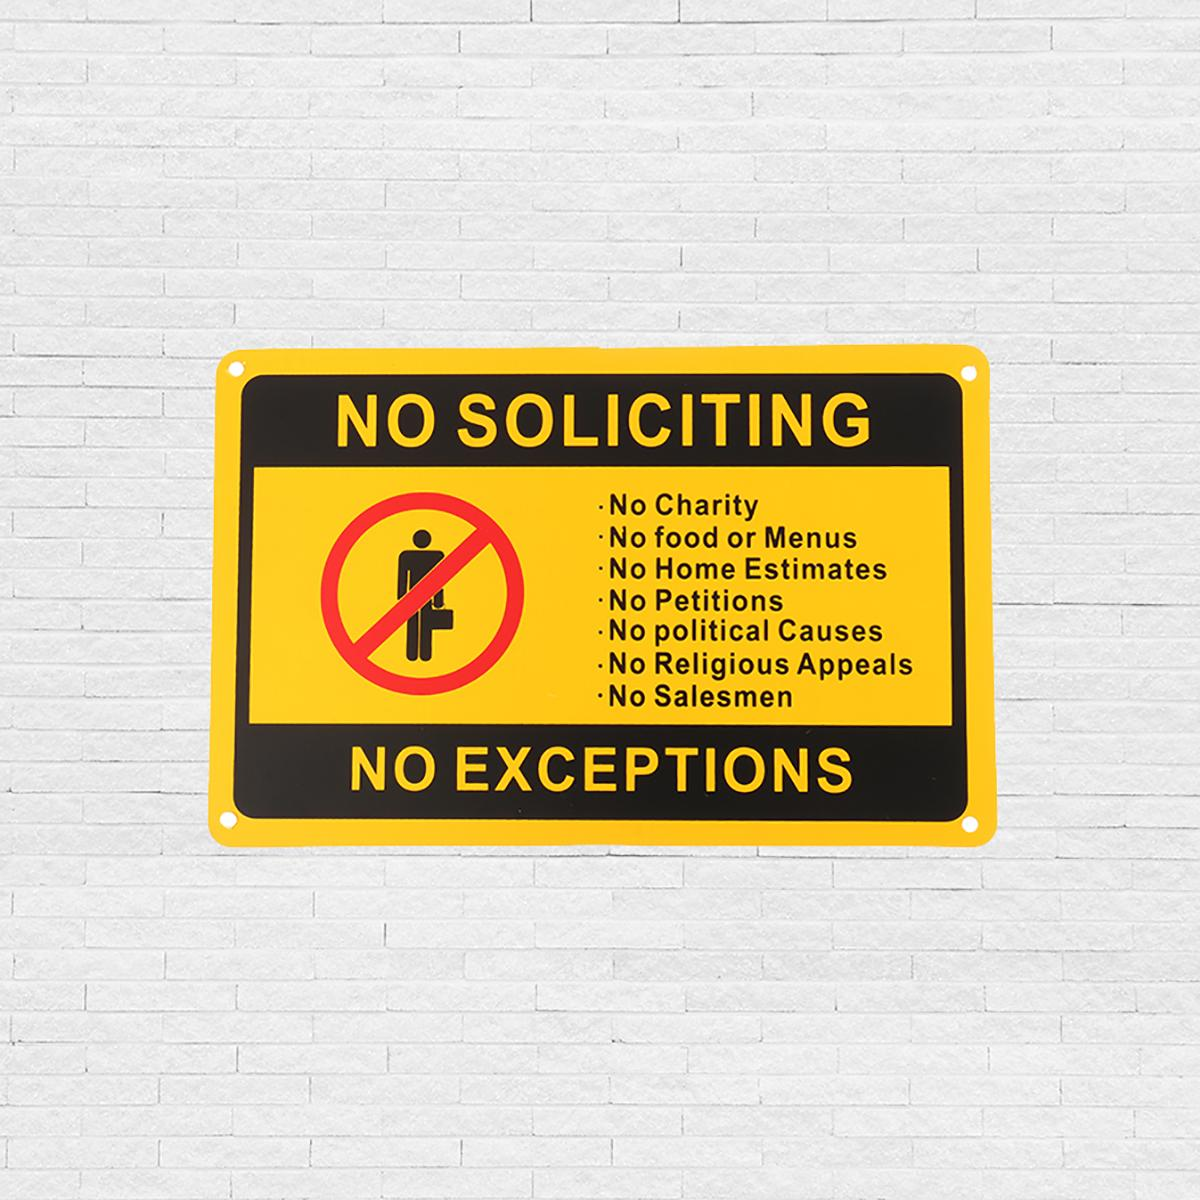 Safurance NO SOLICITING NO EXCEPTIONS Front Door Security Sign Waterproof 11x7/28x18cm  Workplace SafetySafurance NO SOLICITING NO EXCEPTIONS Front Door Security Sign Waterproof 11x7/28x18cm  Workplace Safety